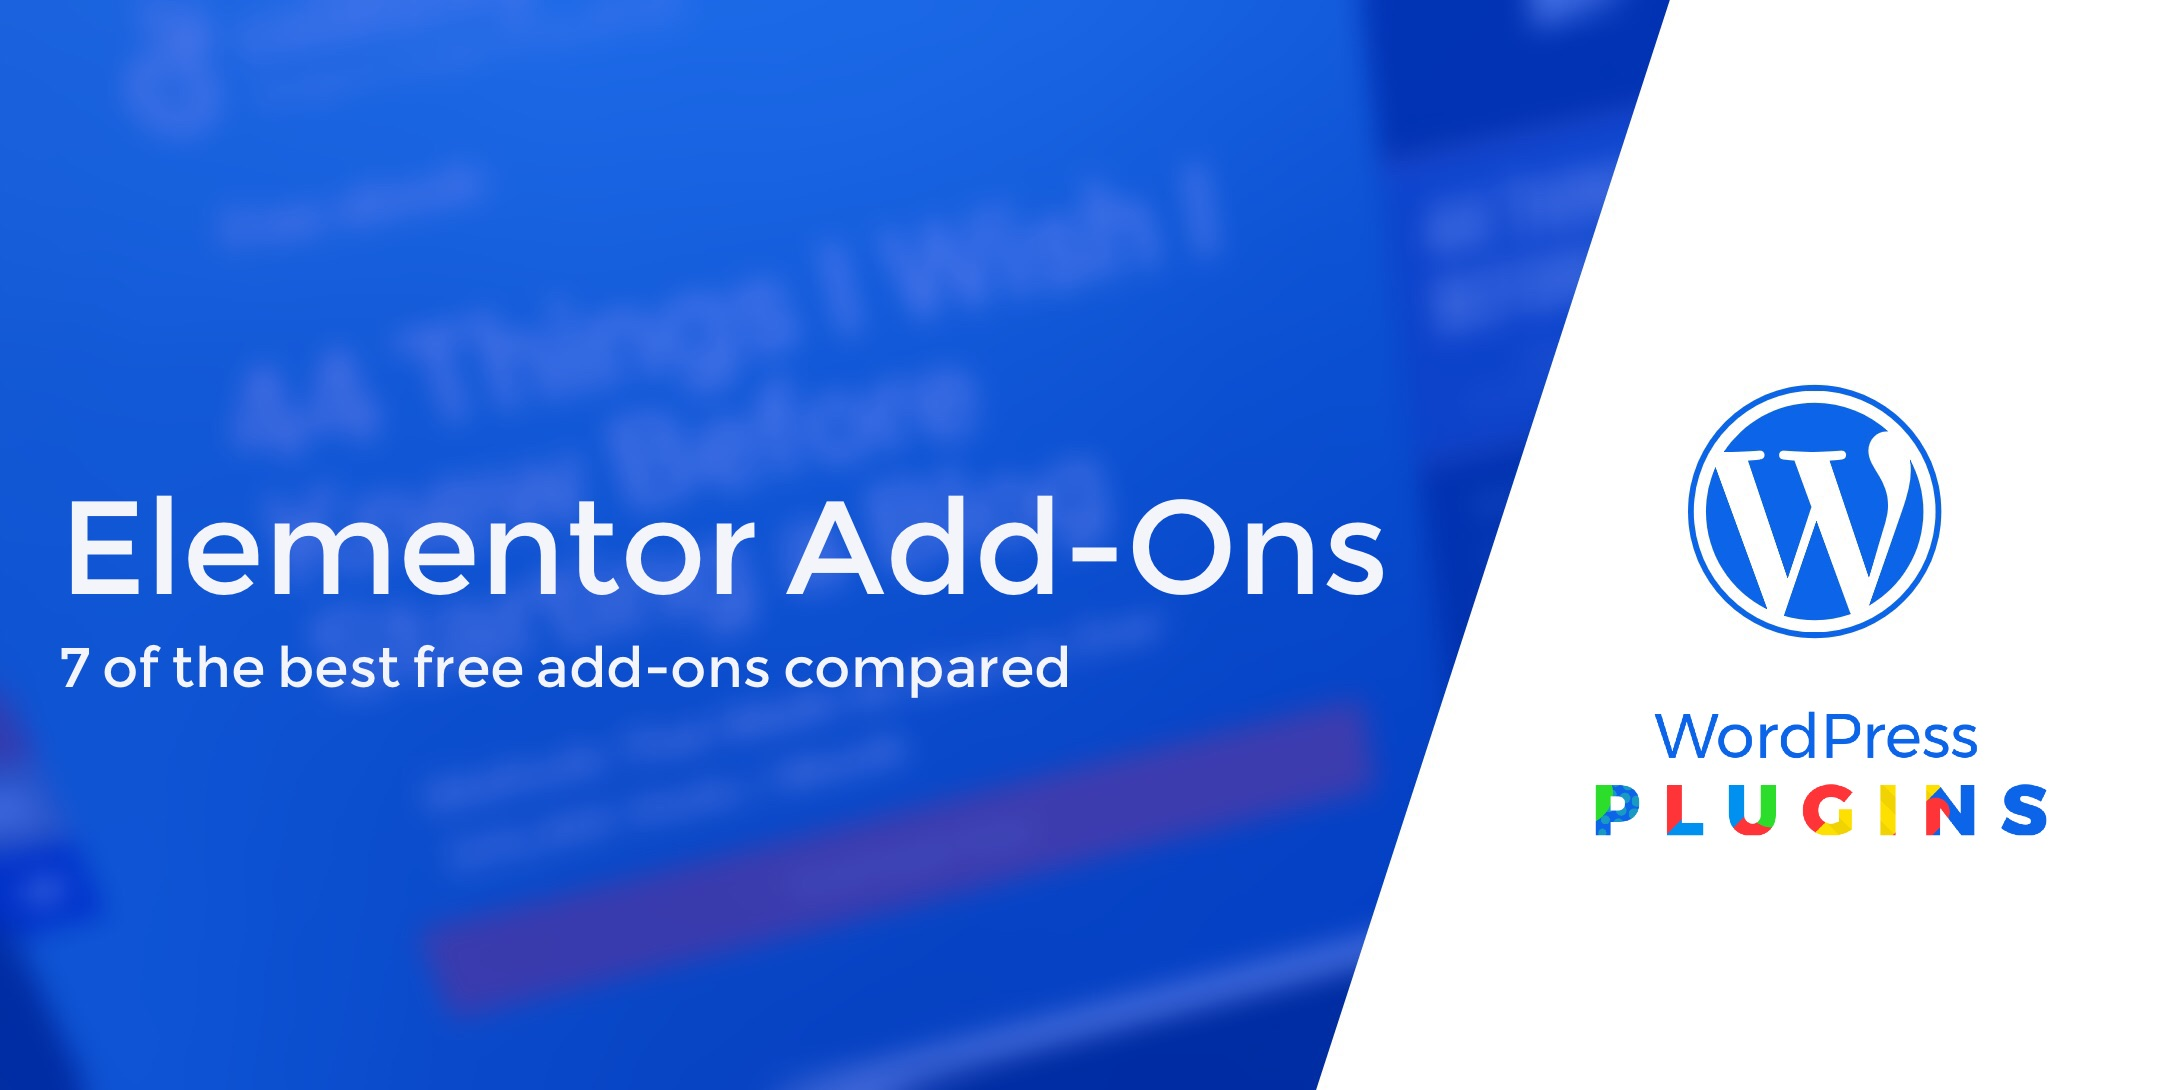 8 Best Free Elementor Add-Ons Compared